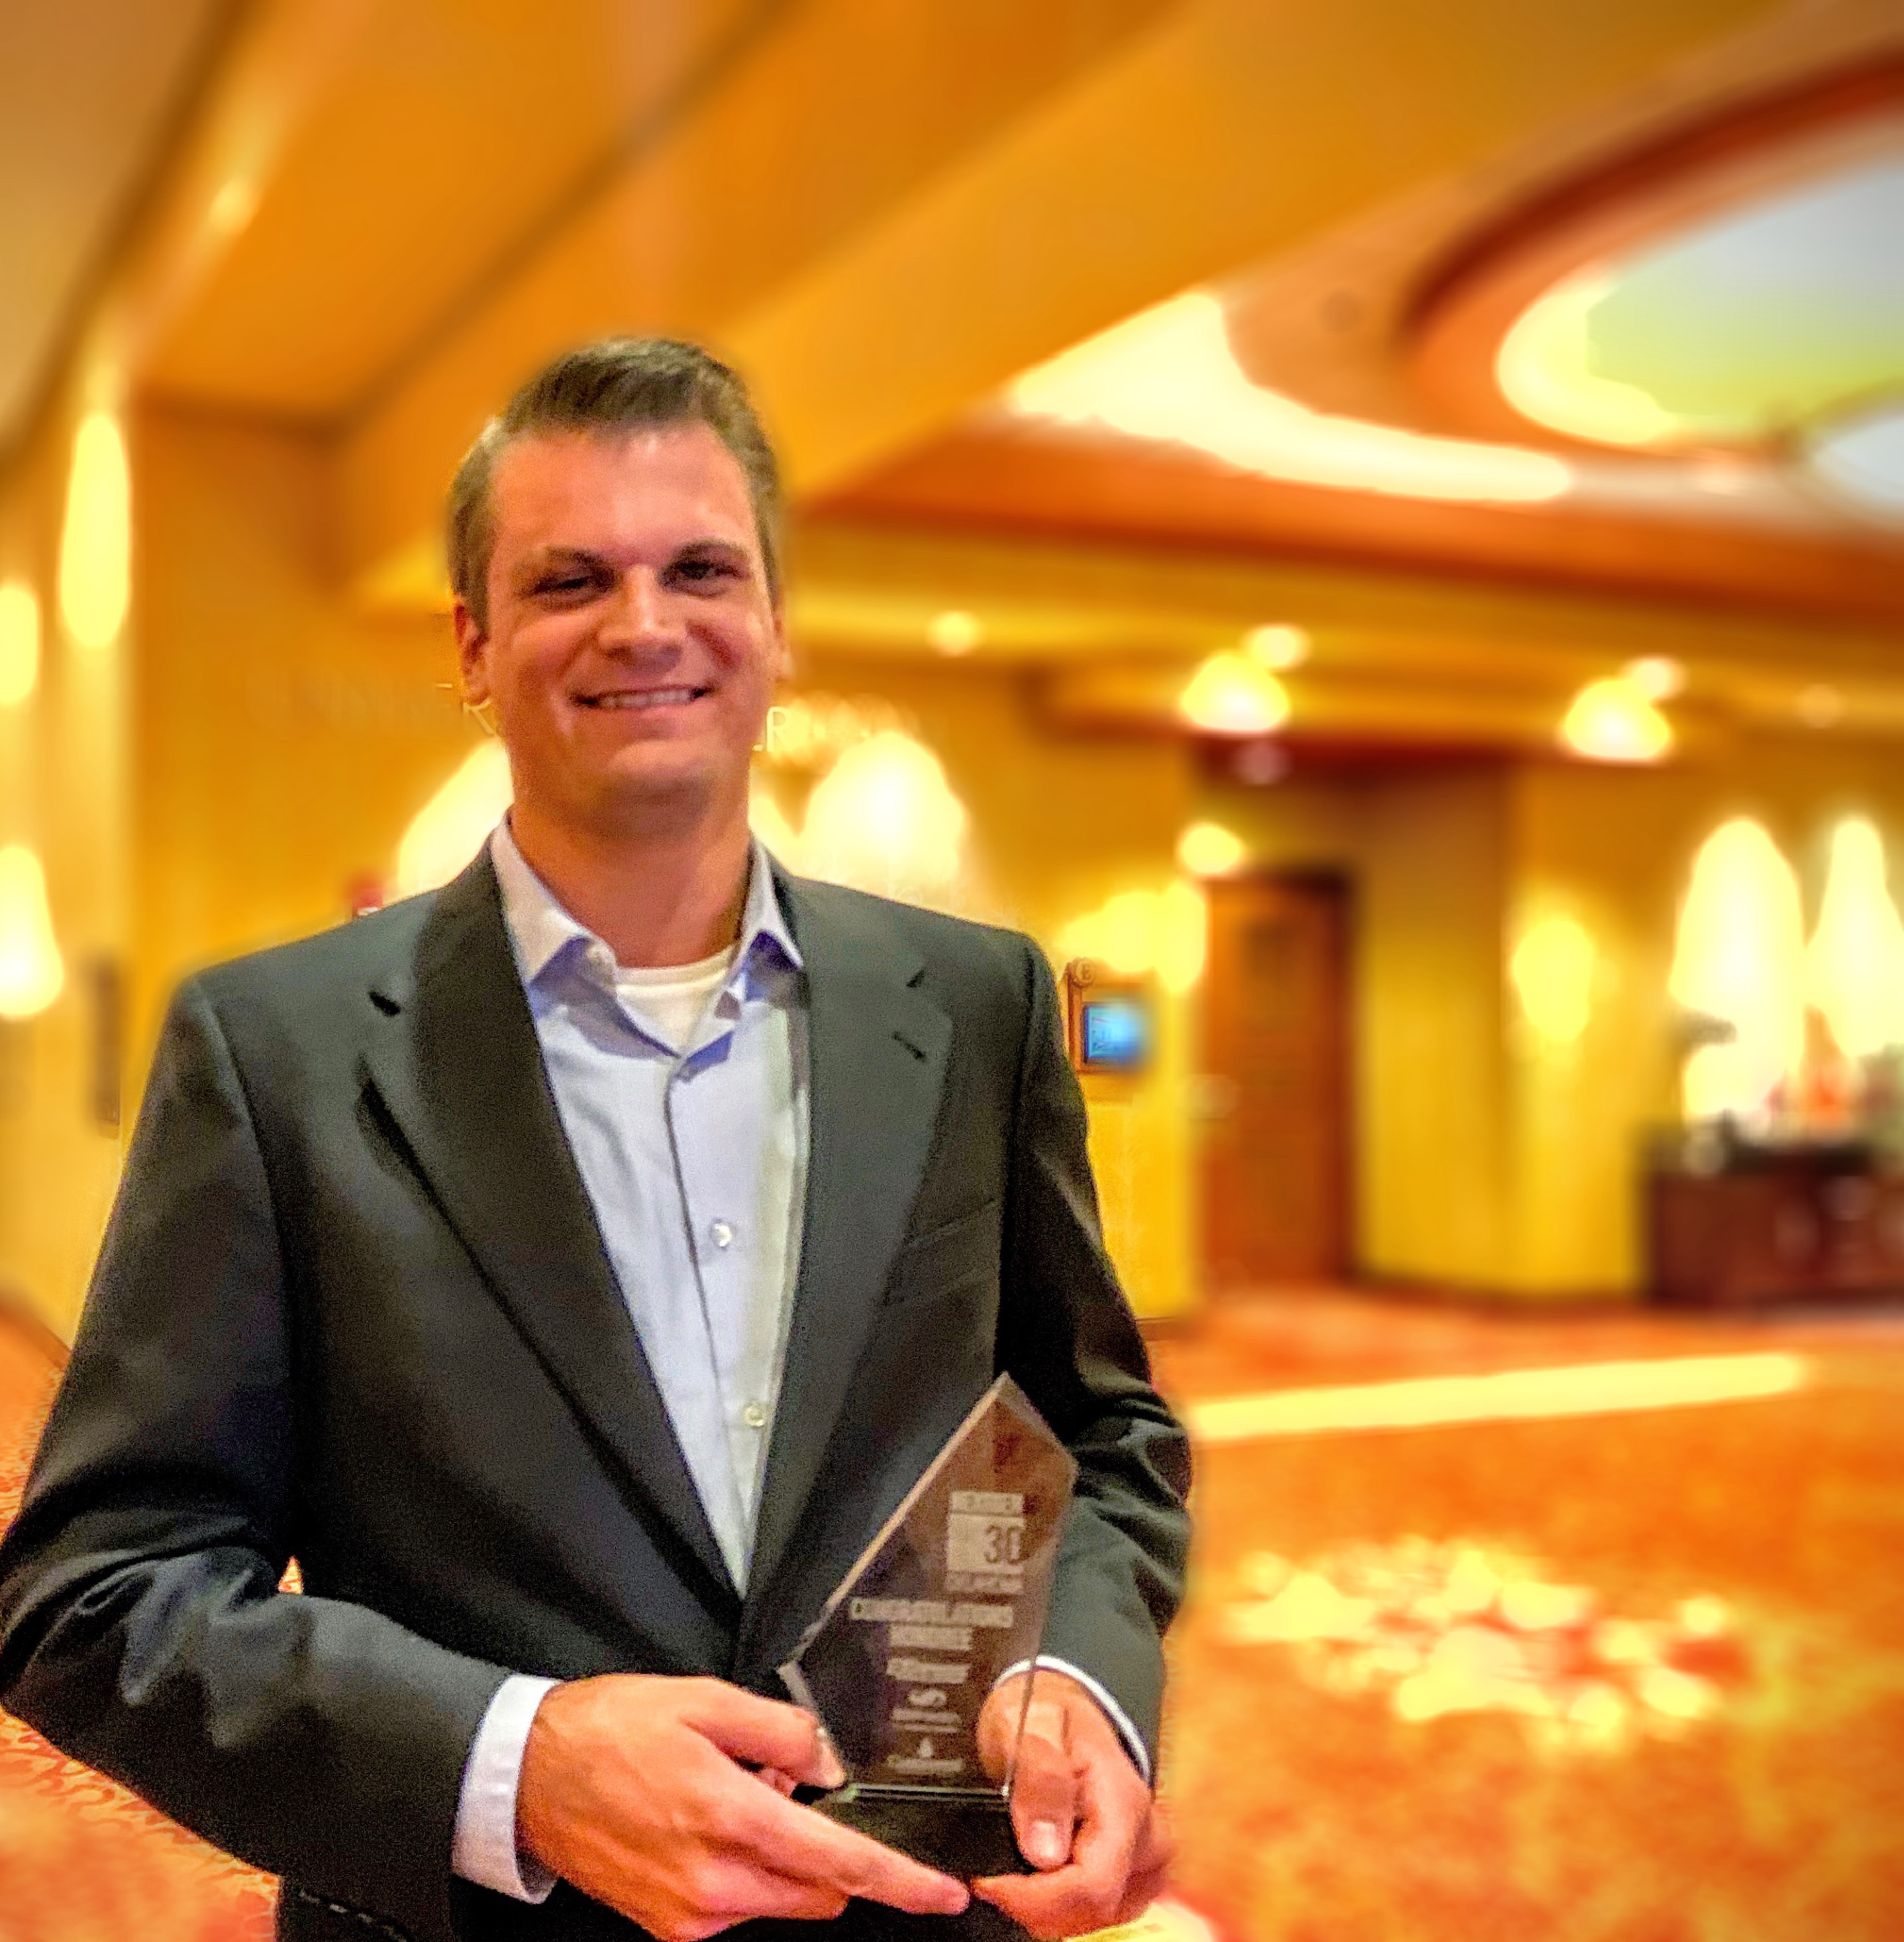 DALLAS SLOUGH NAMED ONE OF THE 30 MOST INFLUENTIAL PEOPLE UNDER 30 ACROSS THE STATE OF OKLAHOMA FOR SALES AND MARKETING